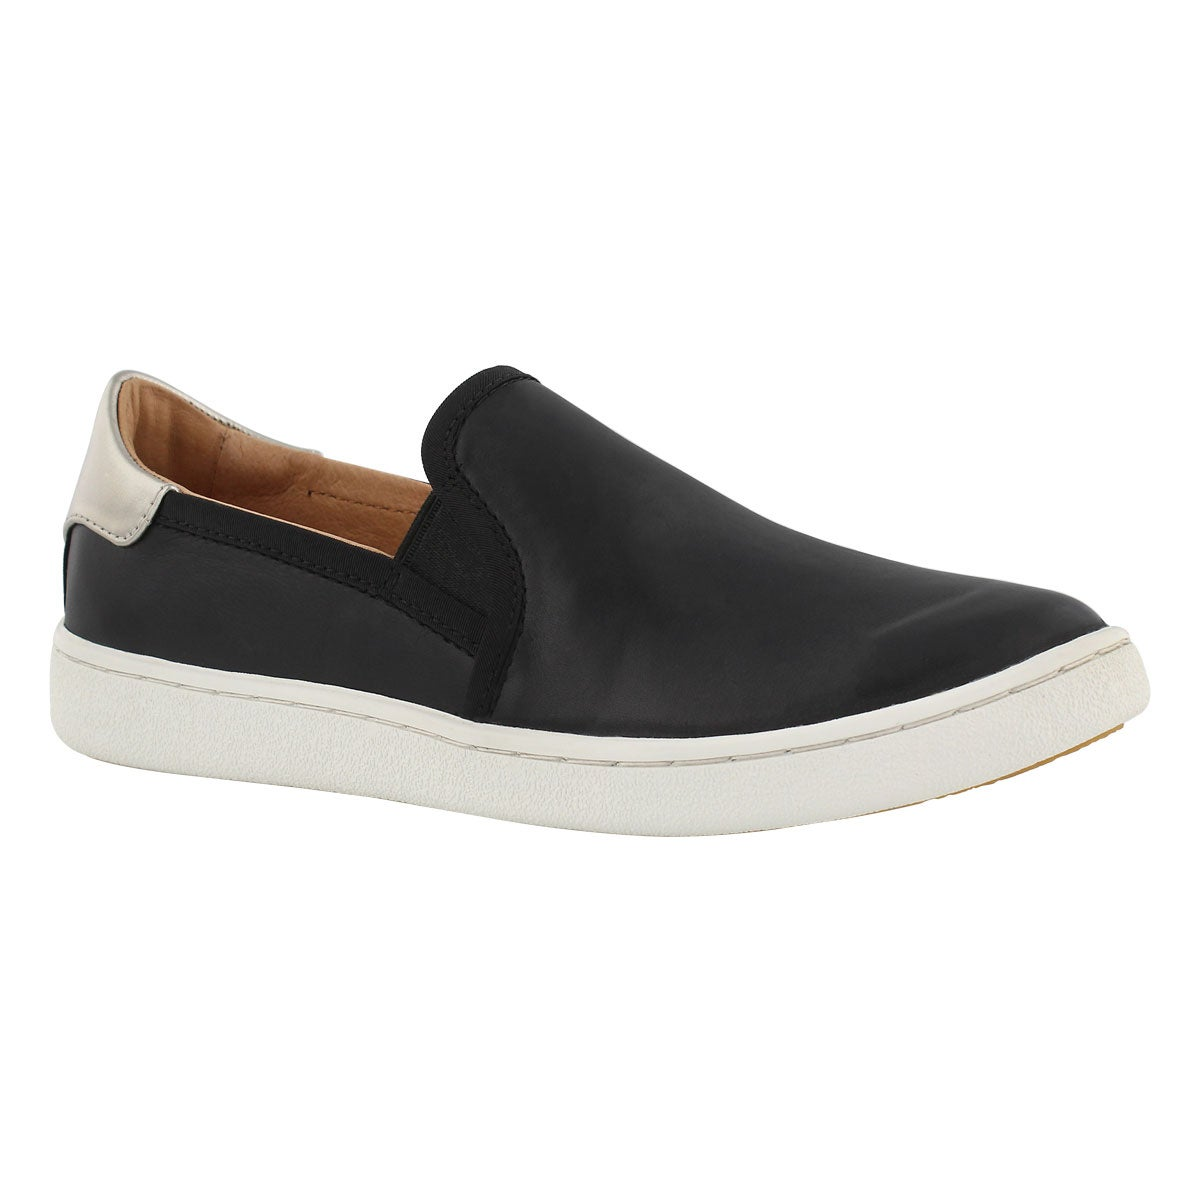 1aab6c0b845 Details about UGG Australia Women's Cas Casual Slip On Shoe